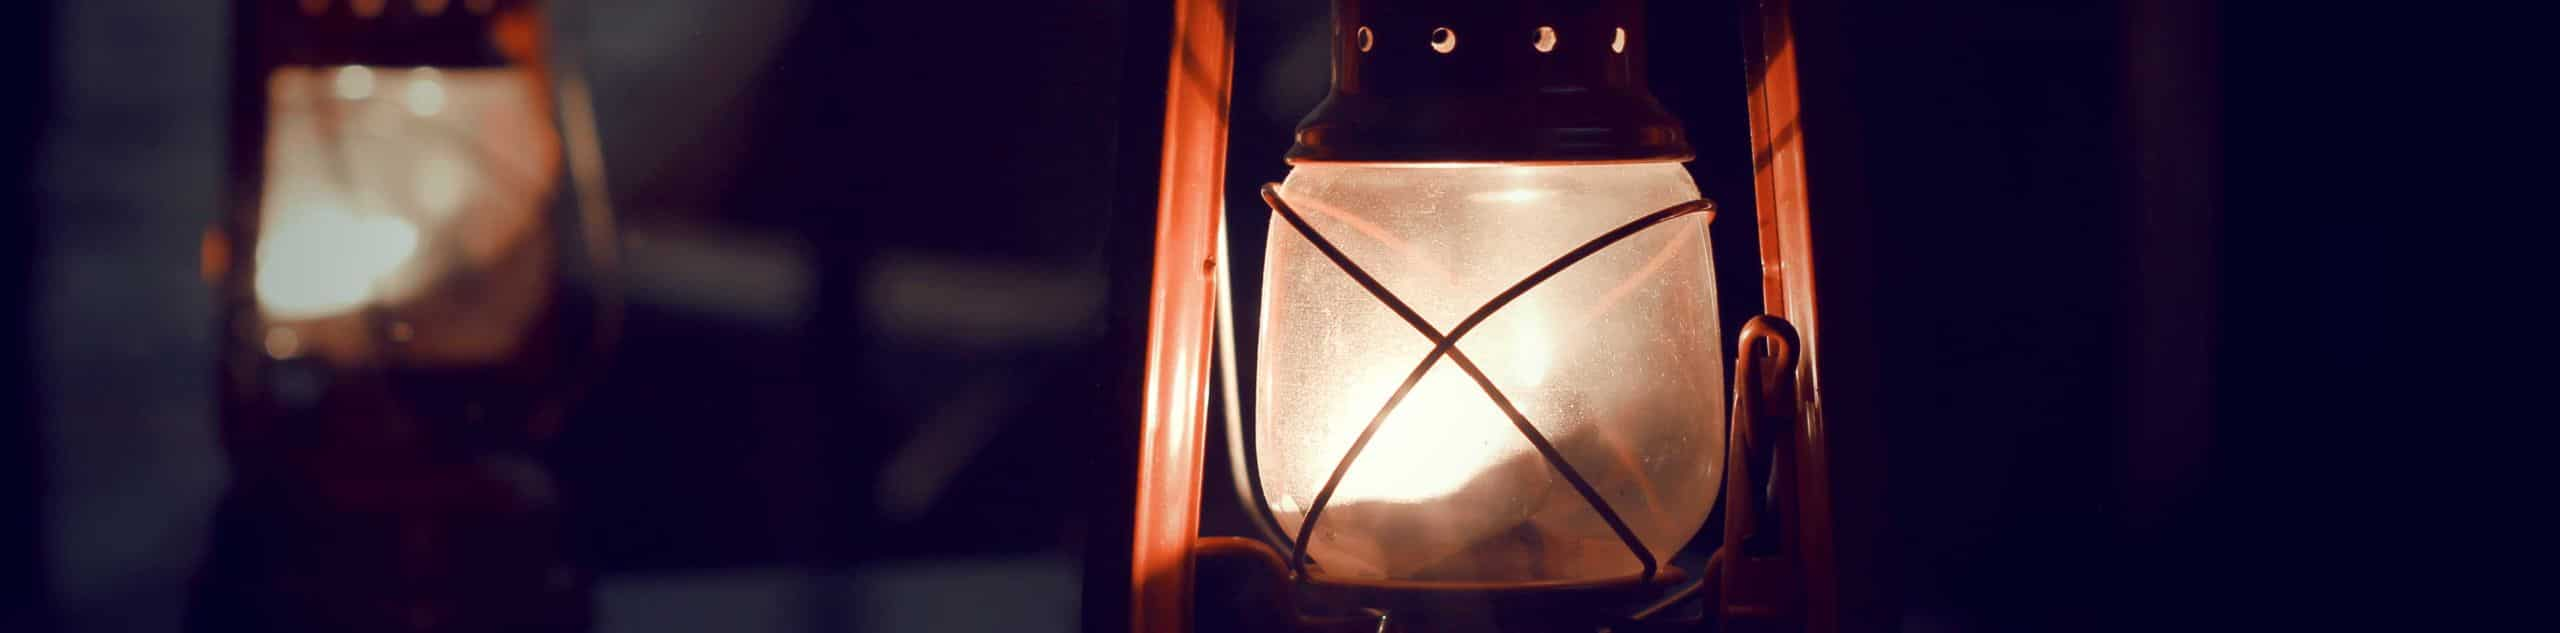 ambient lighting dungeons dragons